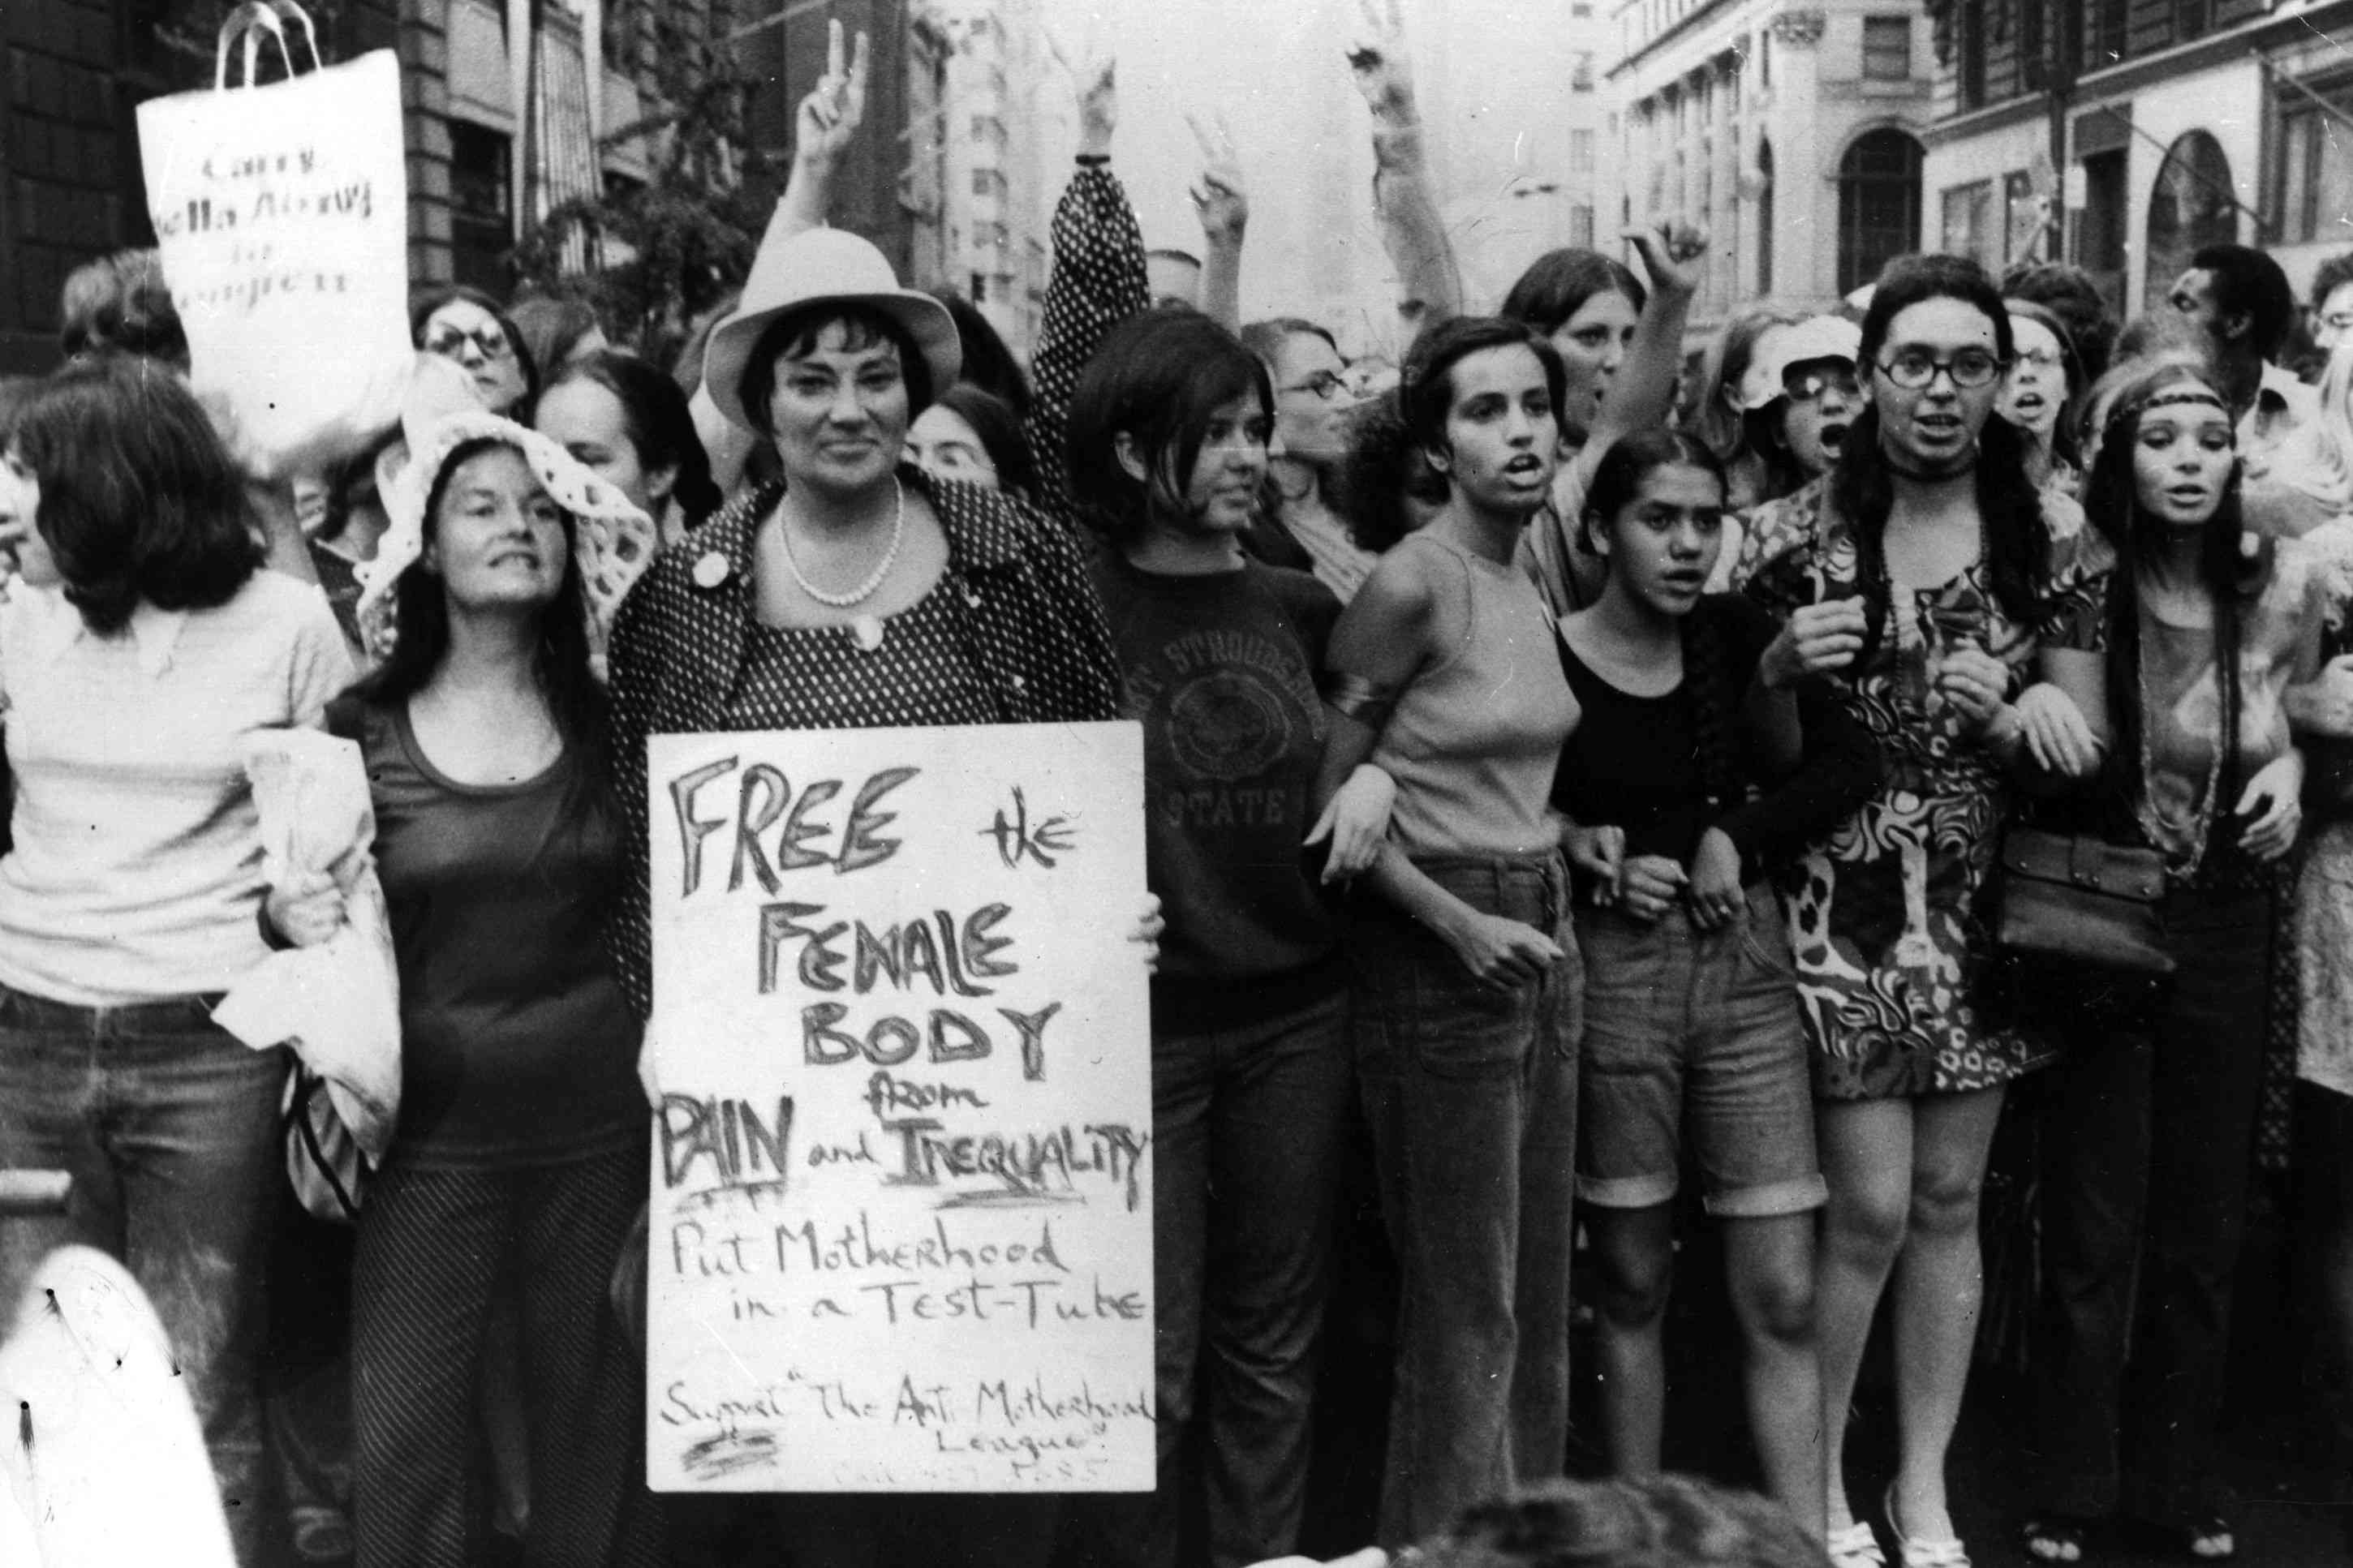 Bella Abzug features prominently among a crowd of women during her run for Congress as a chief organisers of the Women's Liberation Day parade in New York, on the 50th anniversary of women's suffrage in the U.S.